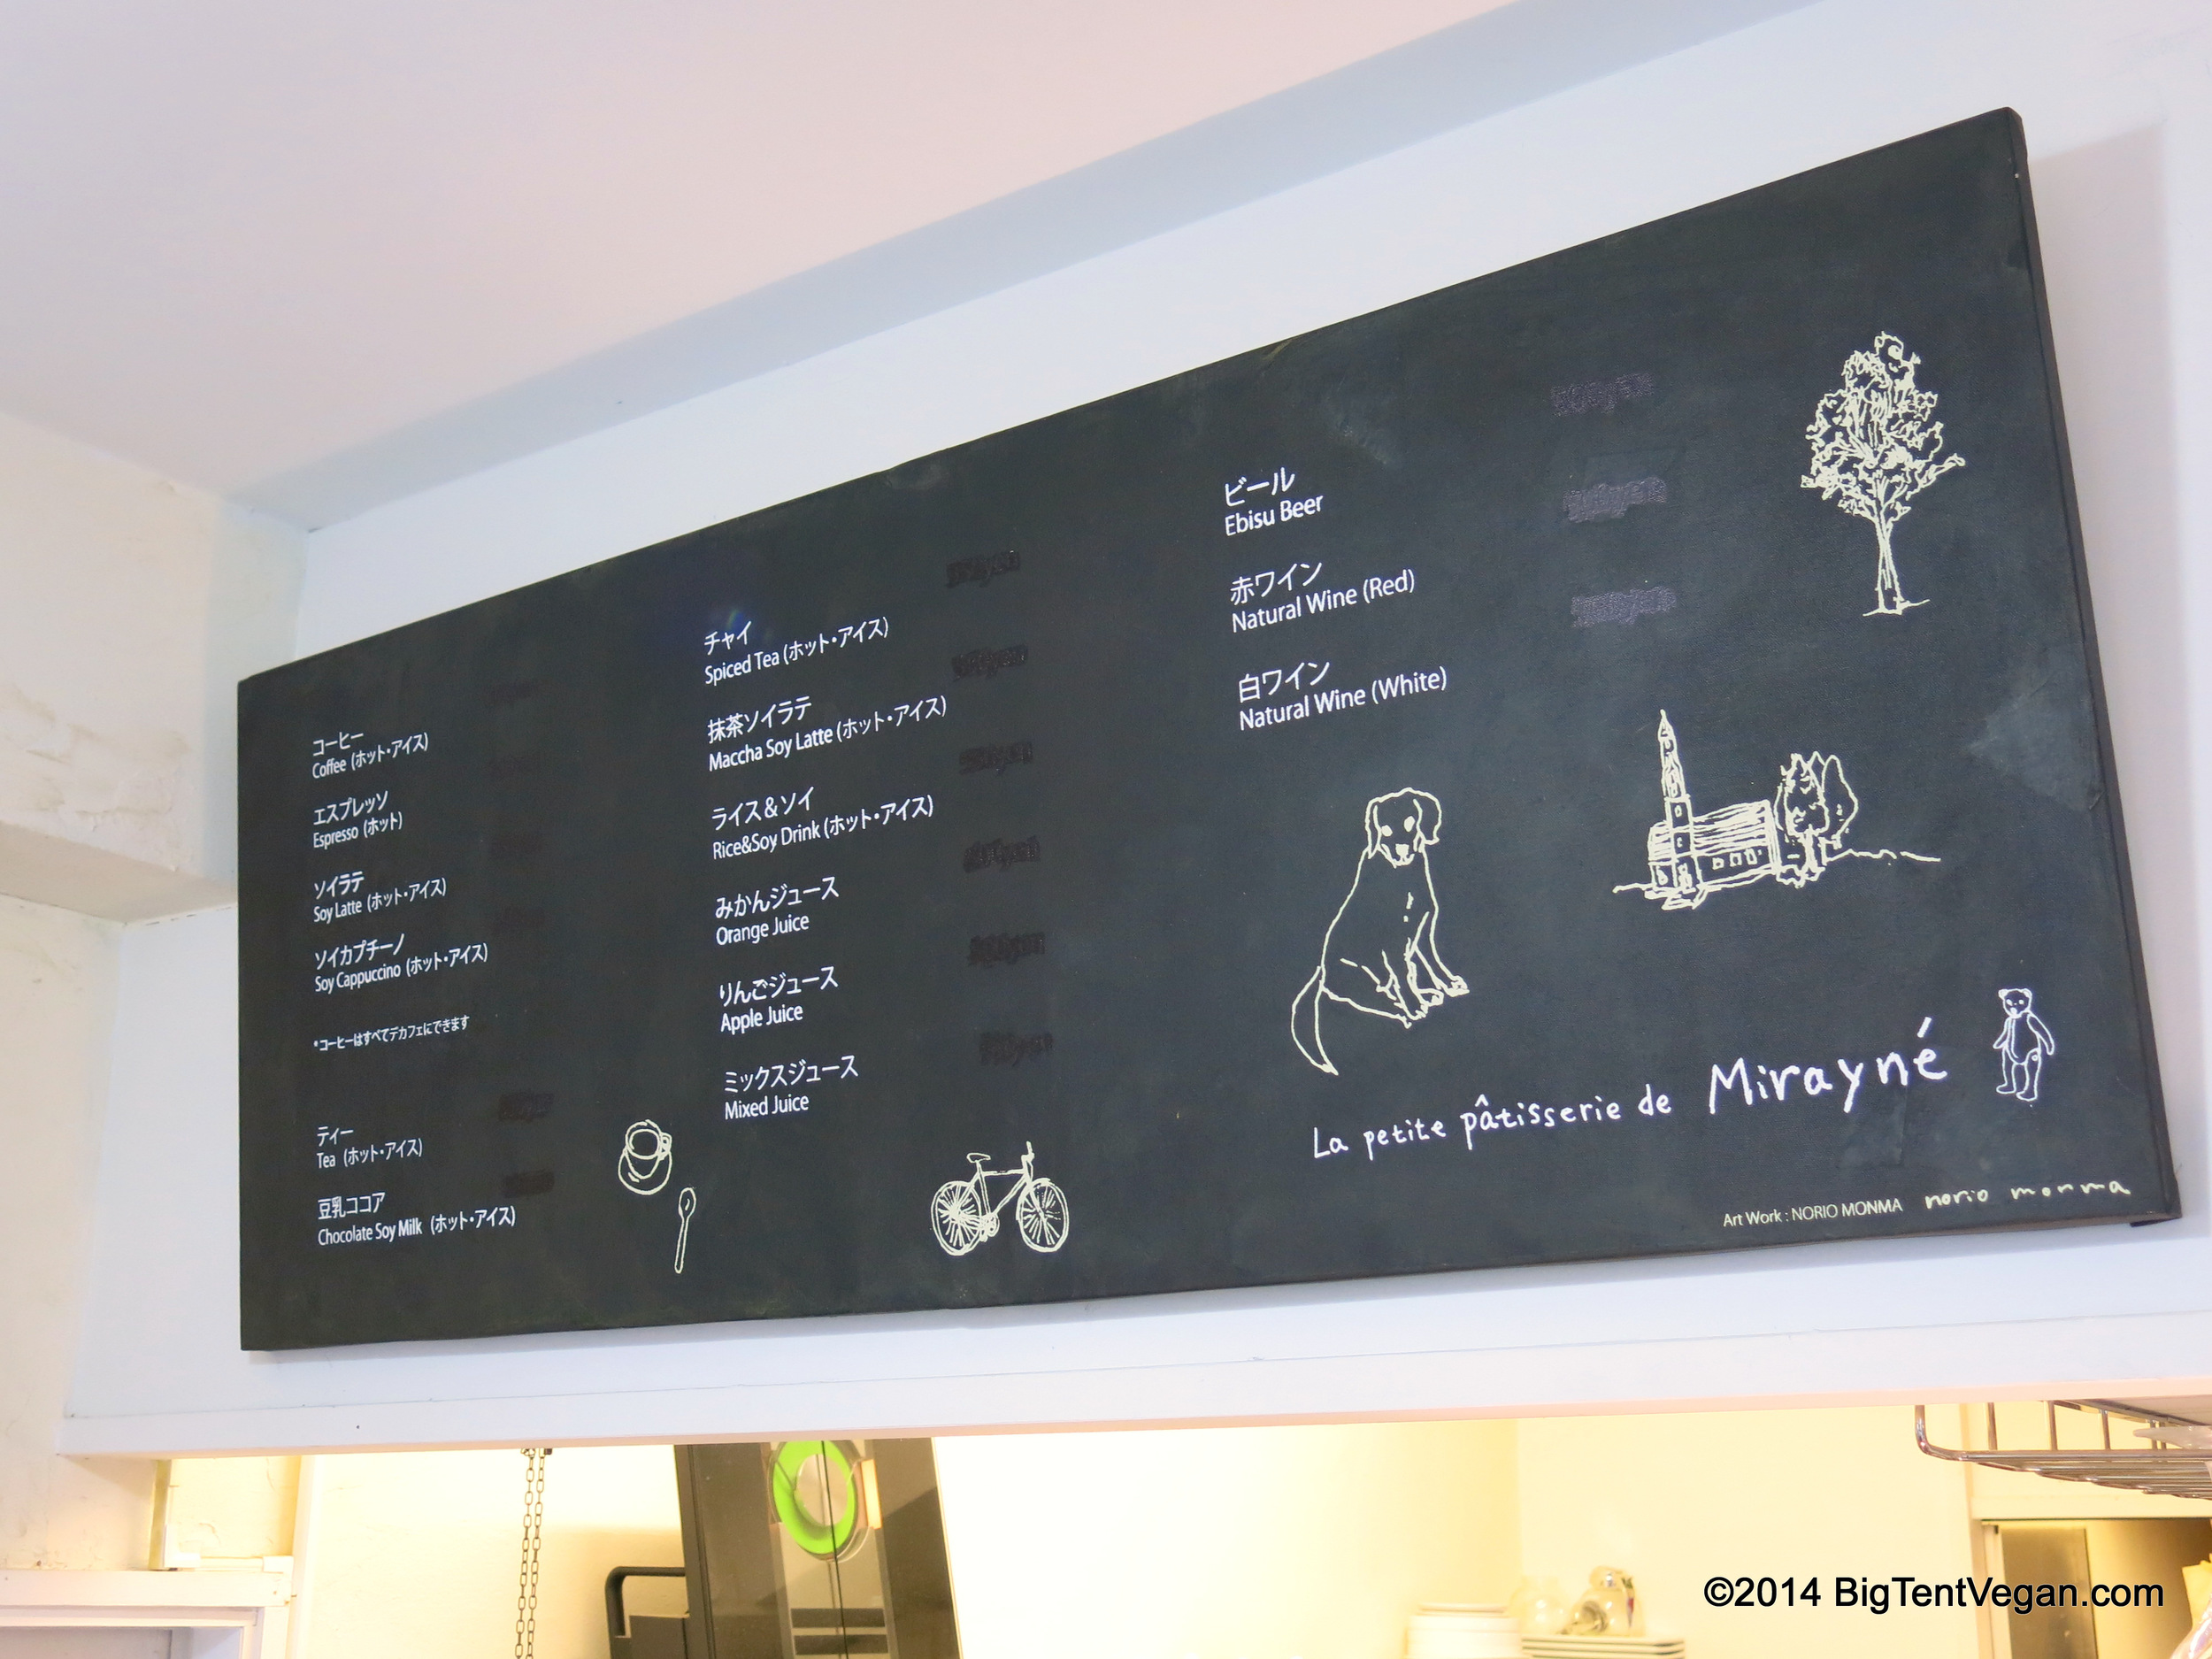 Drink menu board at Le Petite Patisserie de Mirayne. The baked goods and other sweets were all displayed in the glass case with little cards indicating prices.